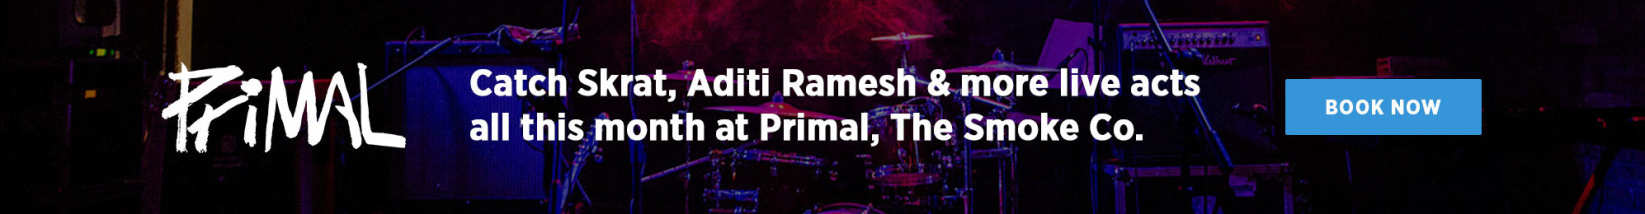 Catch SKRAT, Aditi Ramesh & more live acts all this month at Primal, The Smoke Co.